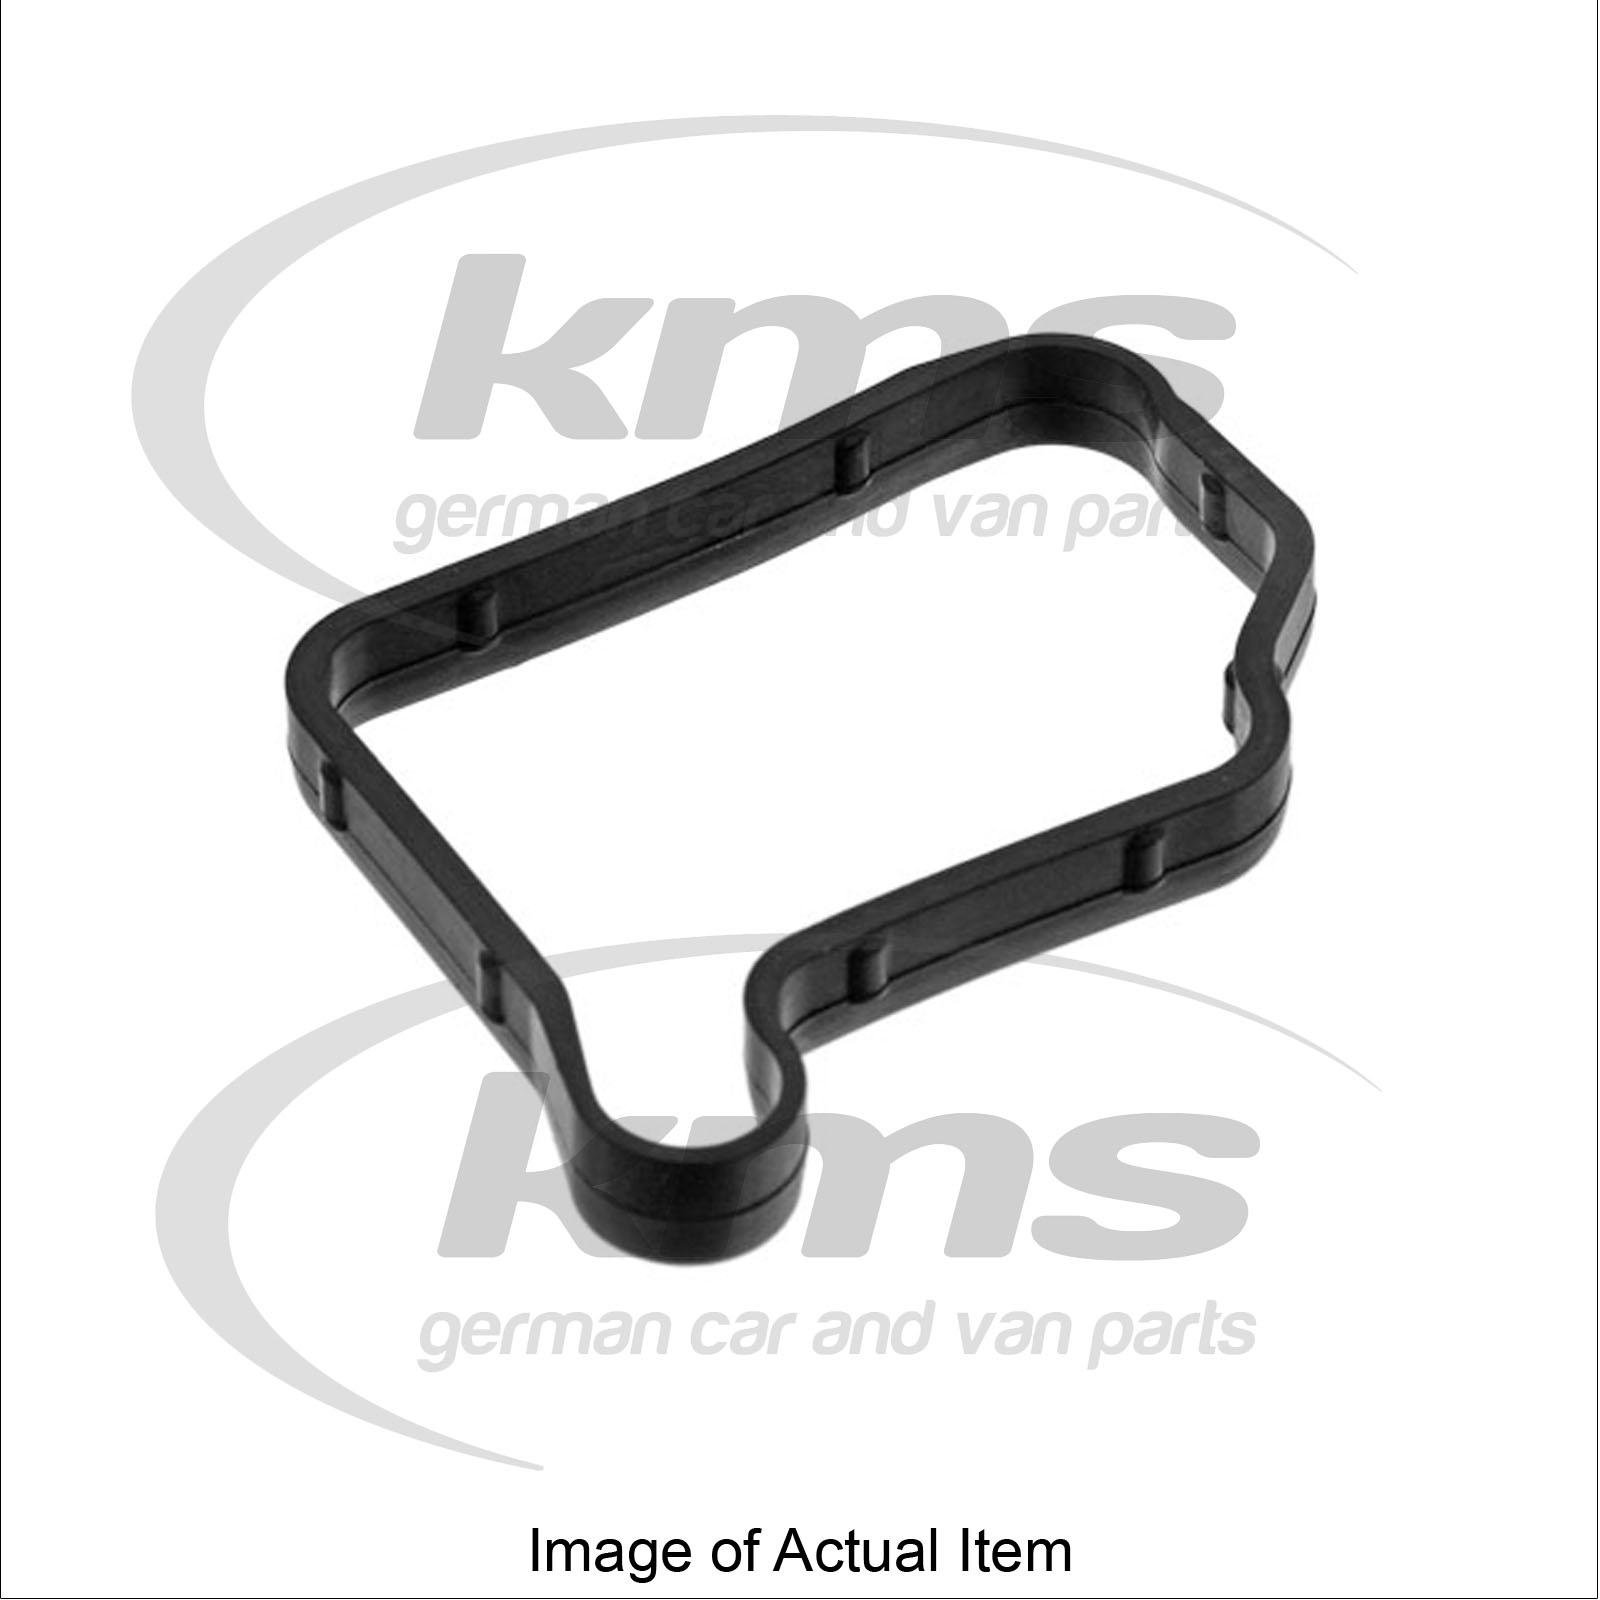 ROCKER COVER GASKET Mercedes Benz CLK Class Coupe